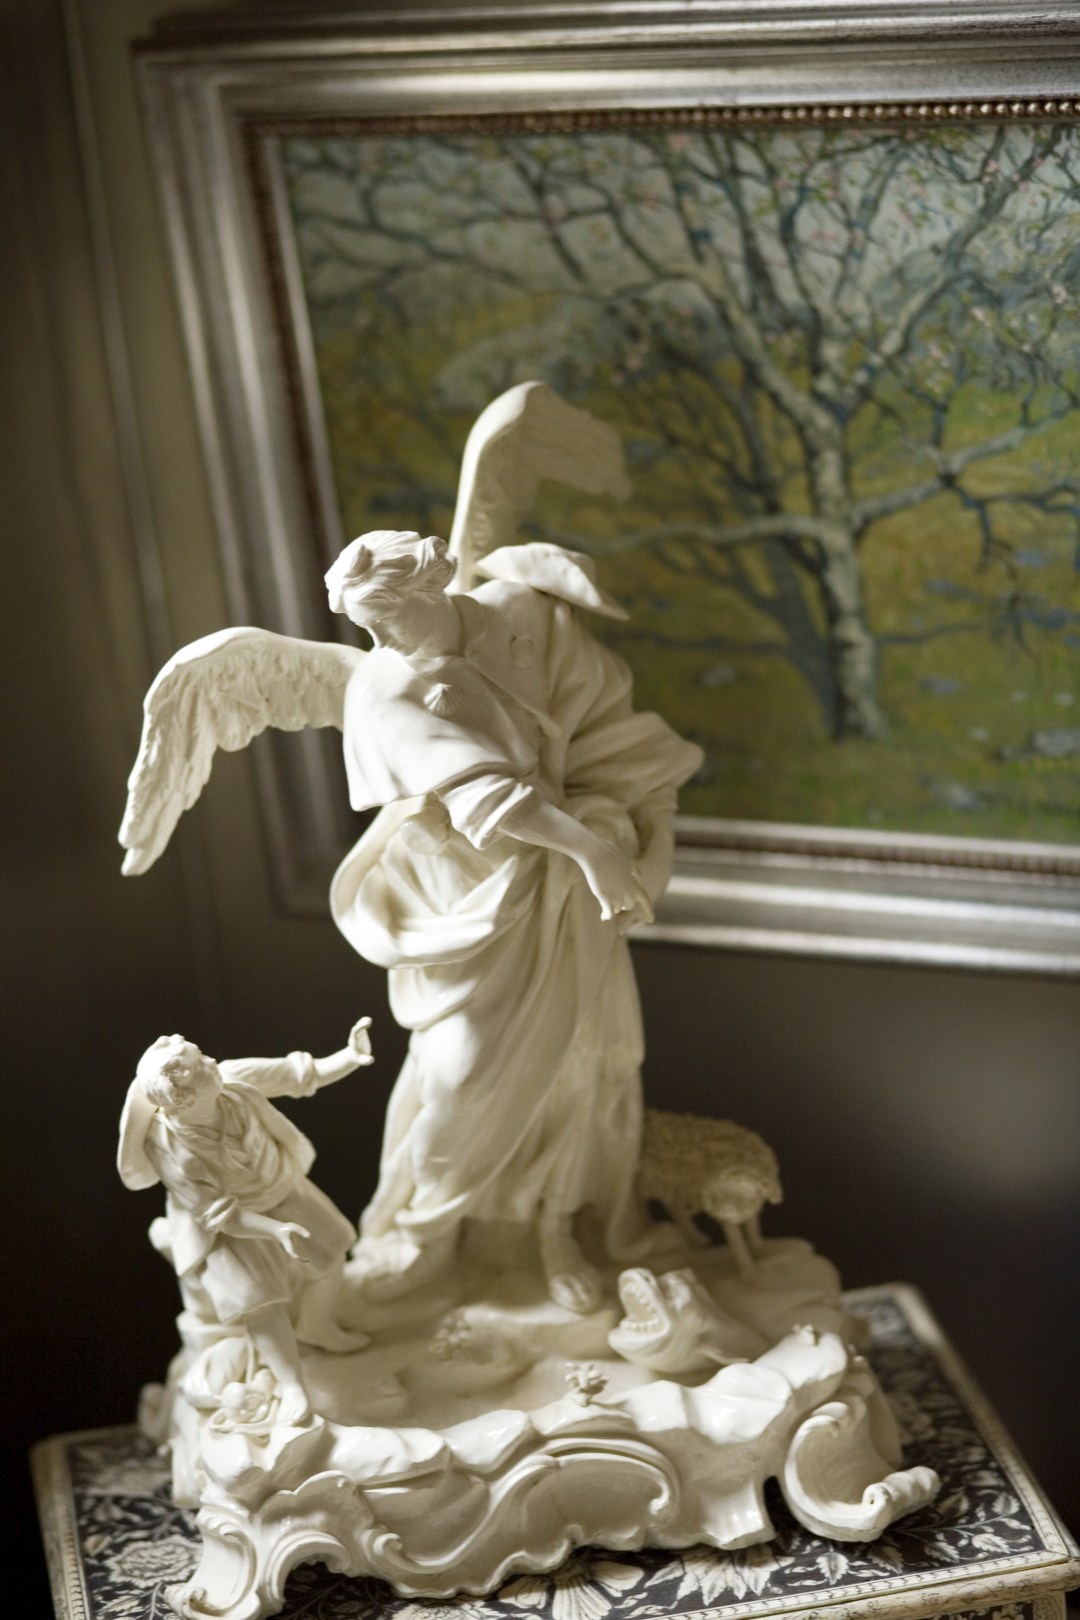 Boston H&G Heidi Pribel 06 07 detail of statue 2